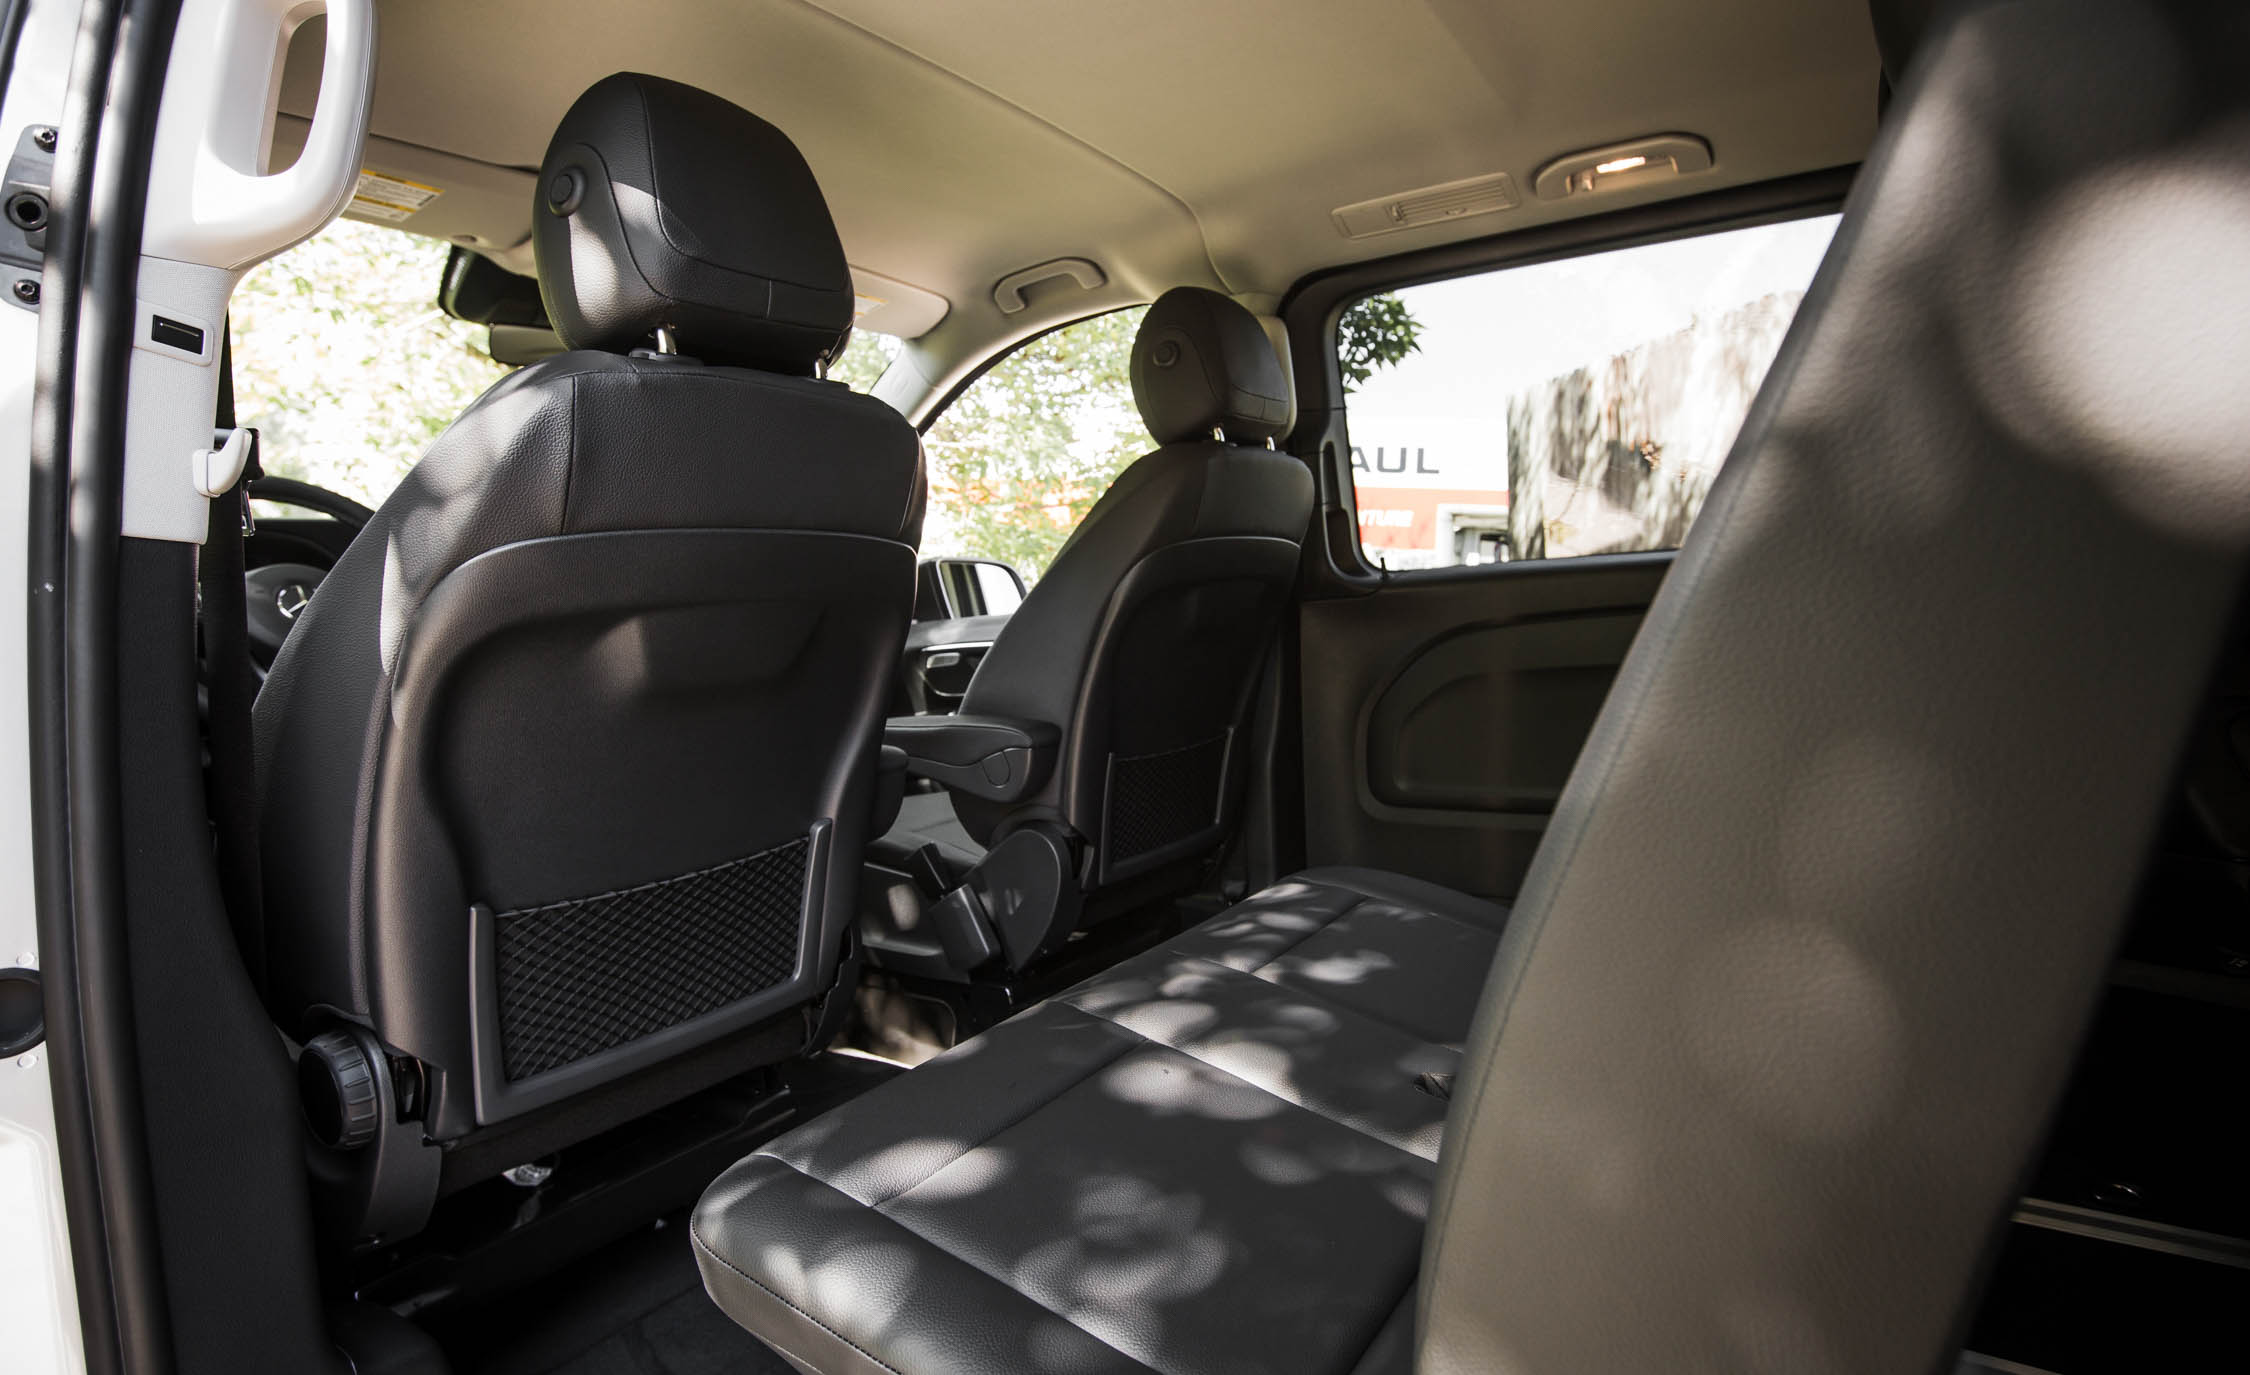 2016 Mercedes-Benz Metris Interior Rear Space